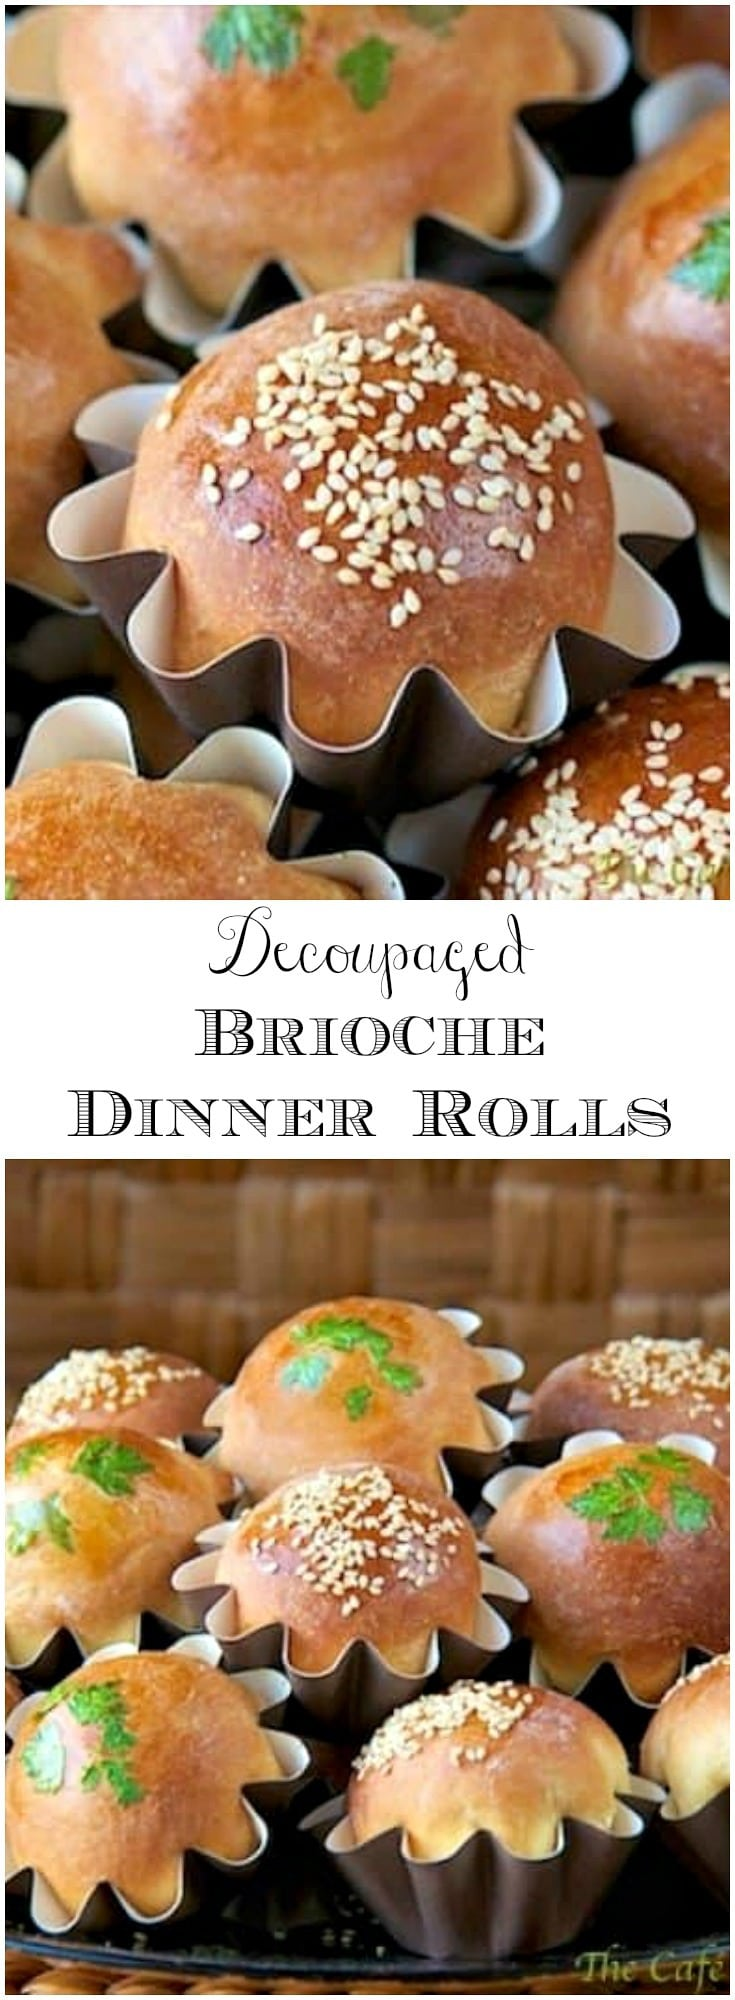 These tender, delicious brioche dinner rolls are not only beautiful little works of art; they are simply delicious.